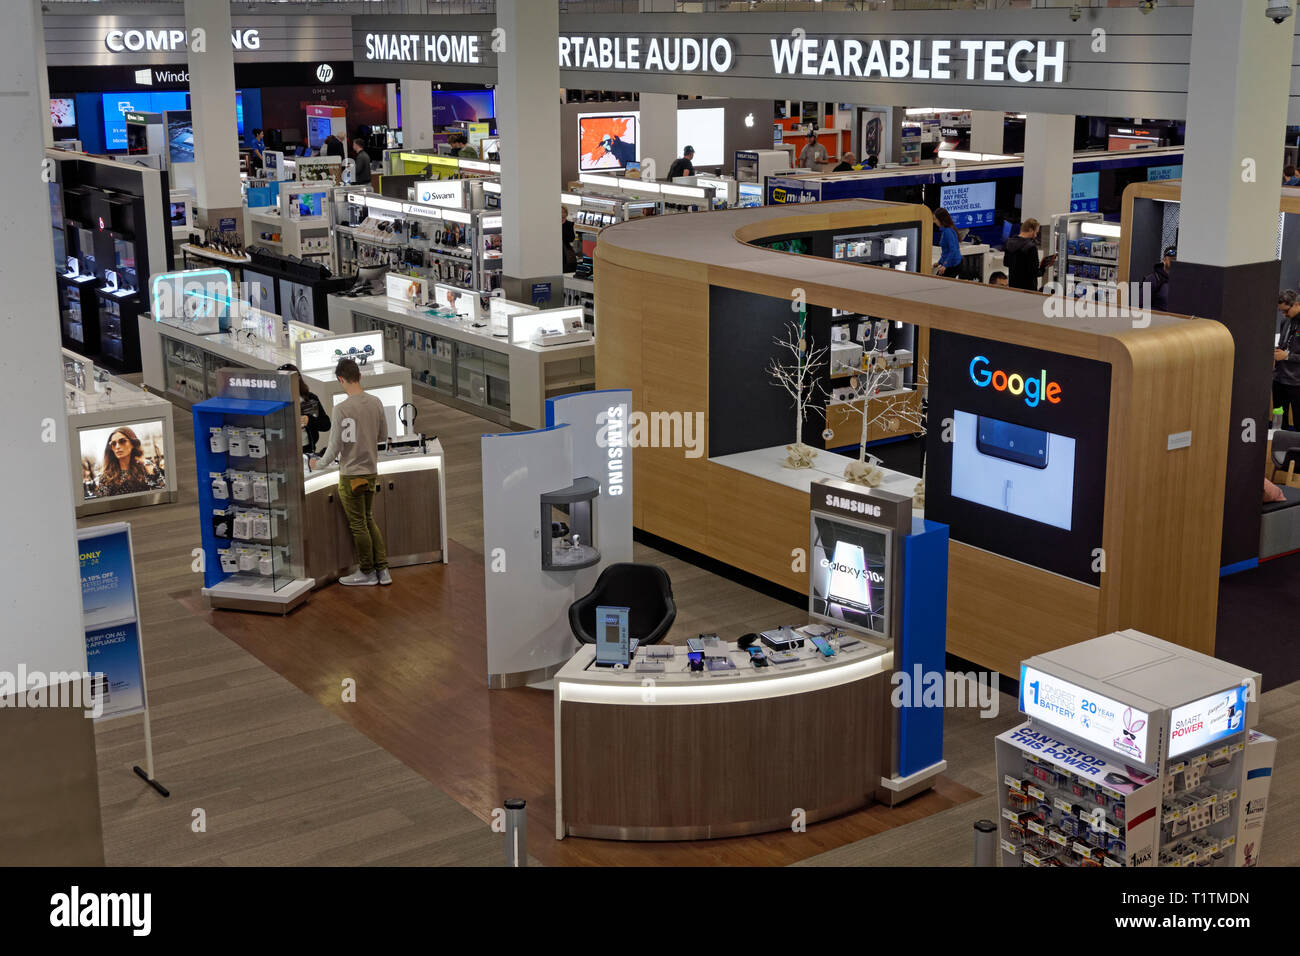 interior-of-the-best-buy-store-on-cambie-street-in-vancouver-bc-canada-T1TMDN.jpg